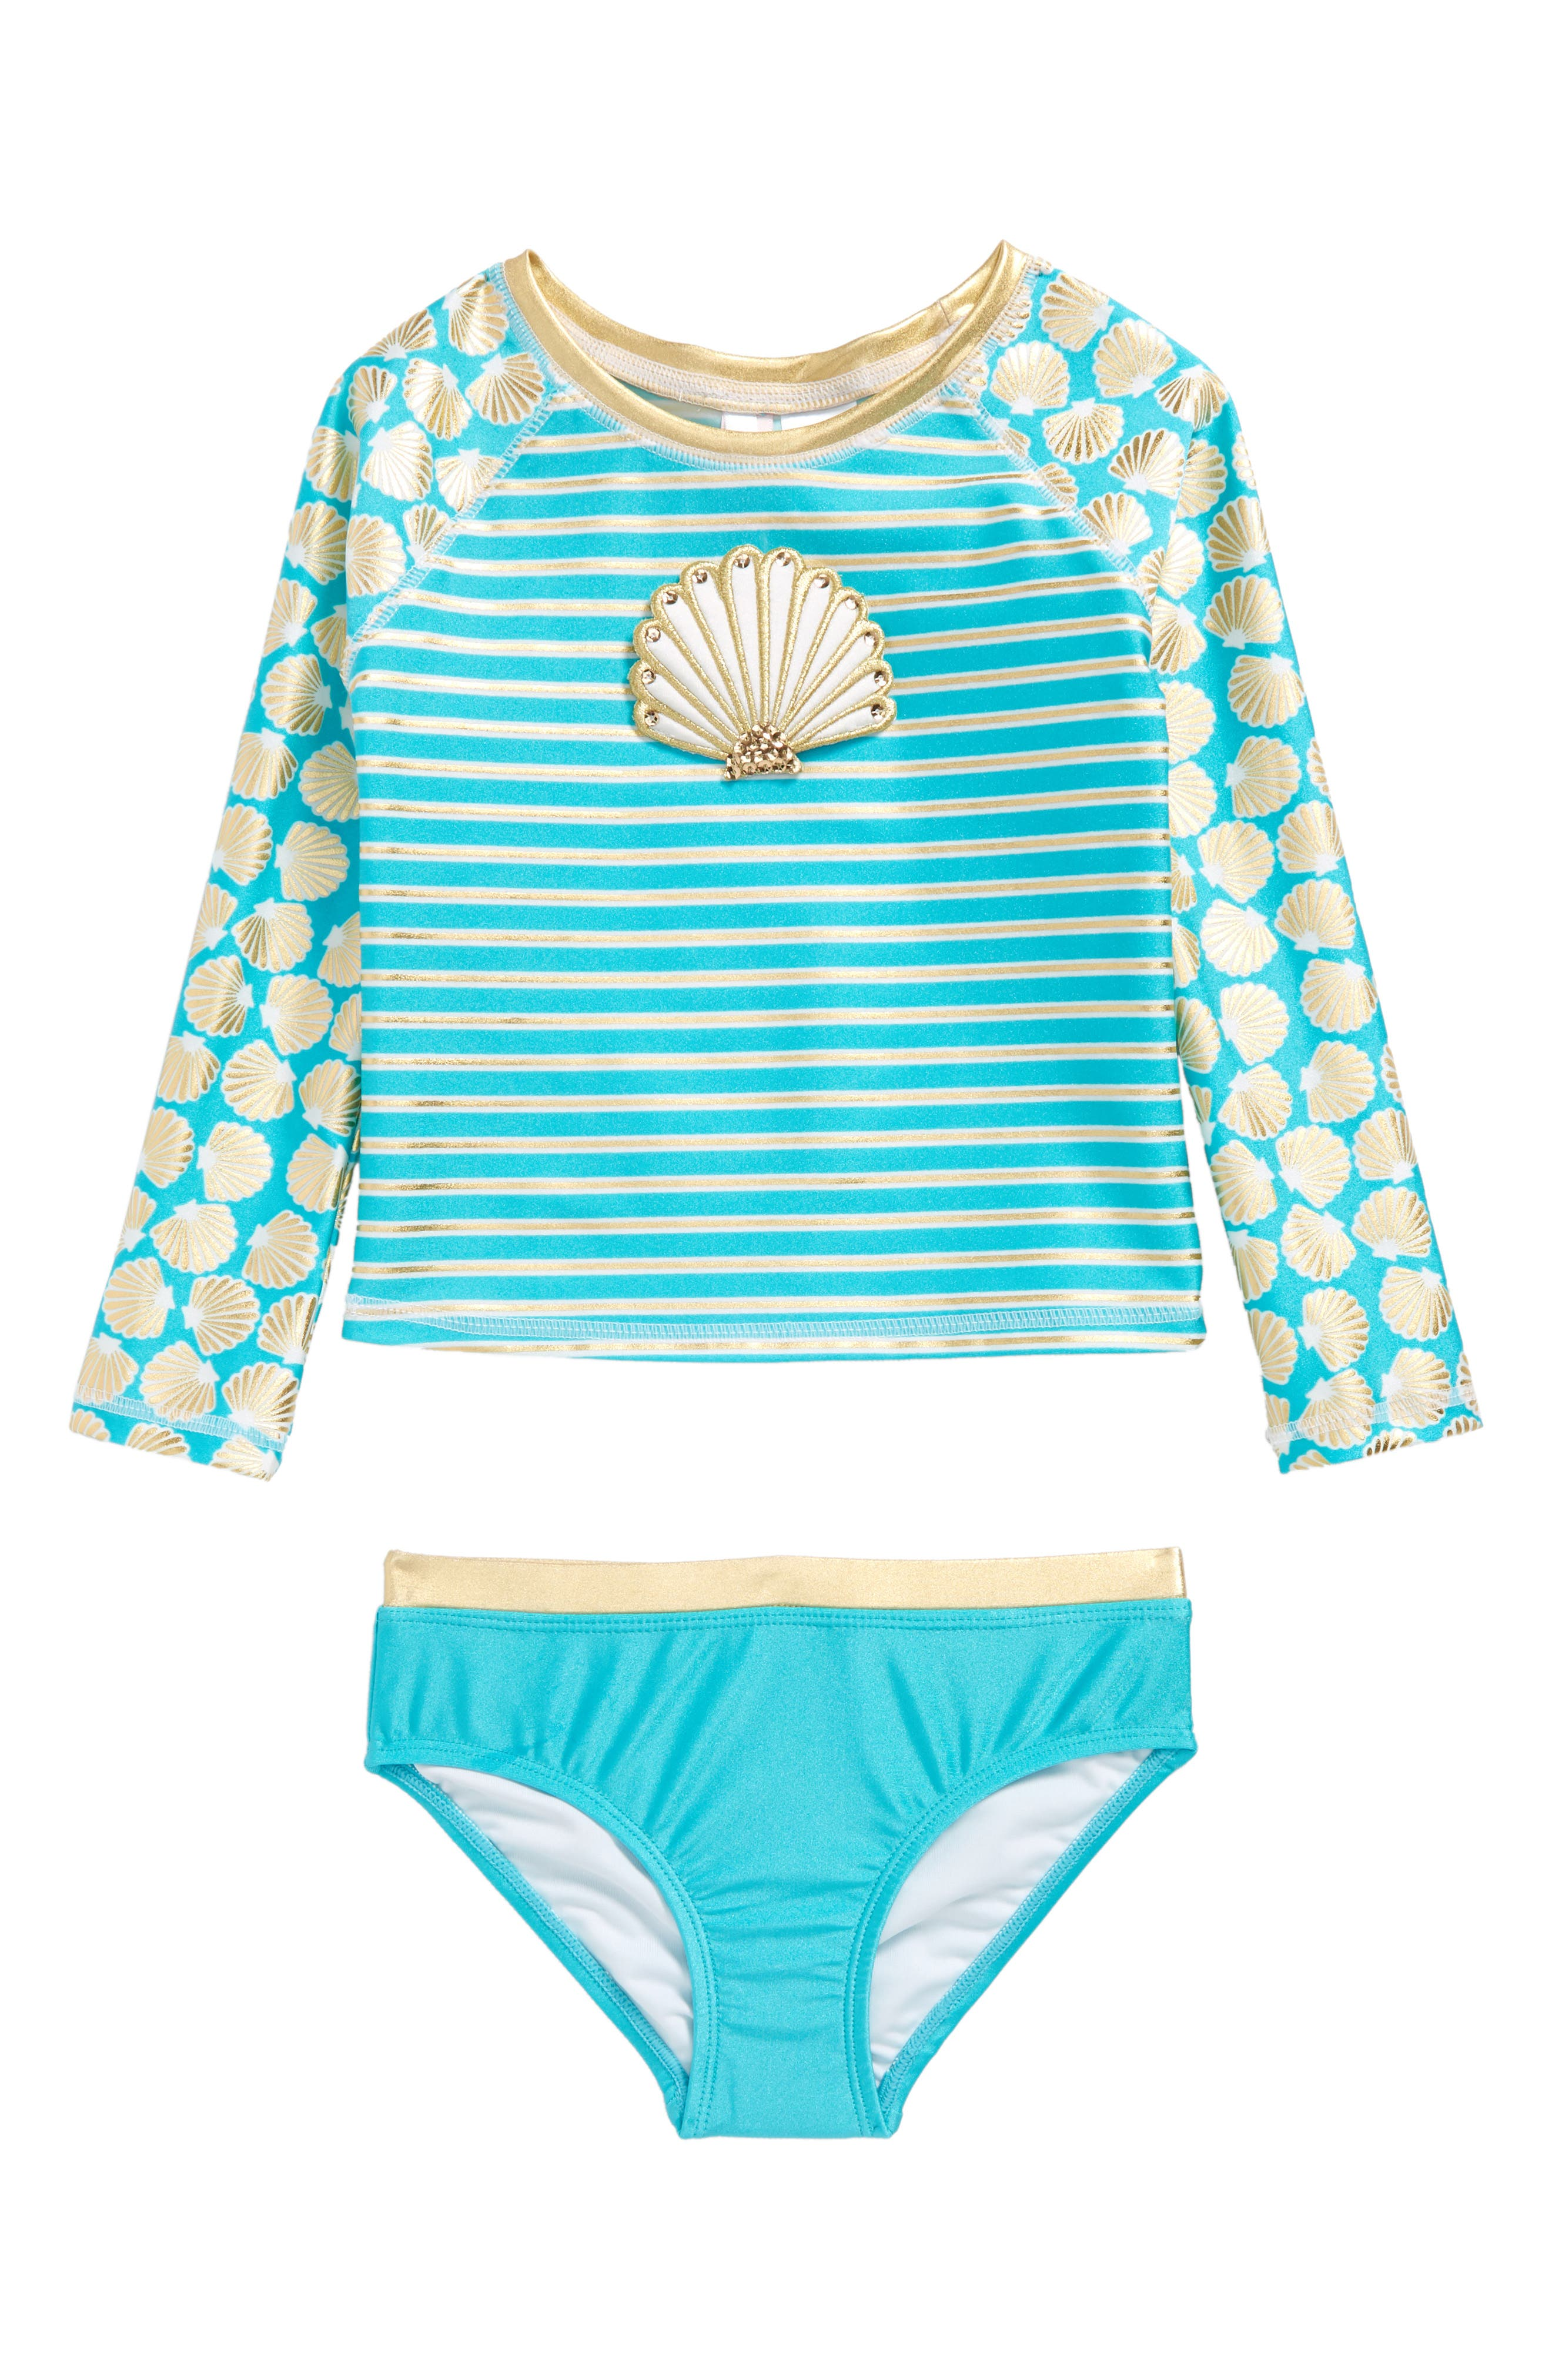 Seashell Stripe Two-Piece Rashguard Swimsuit,                             Main thumbnail 1, color,                             400